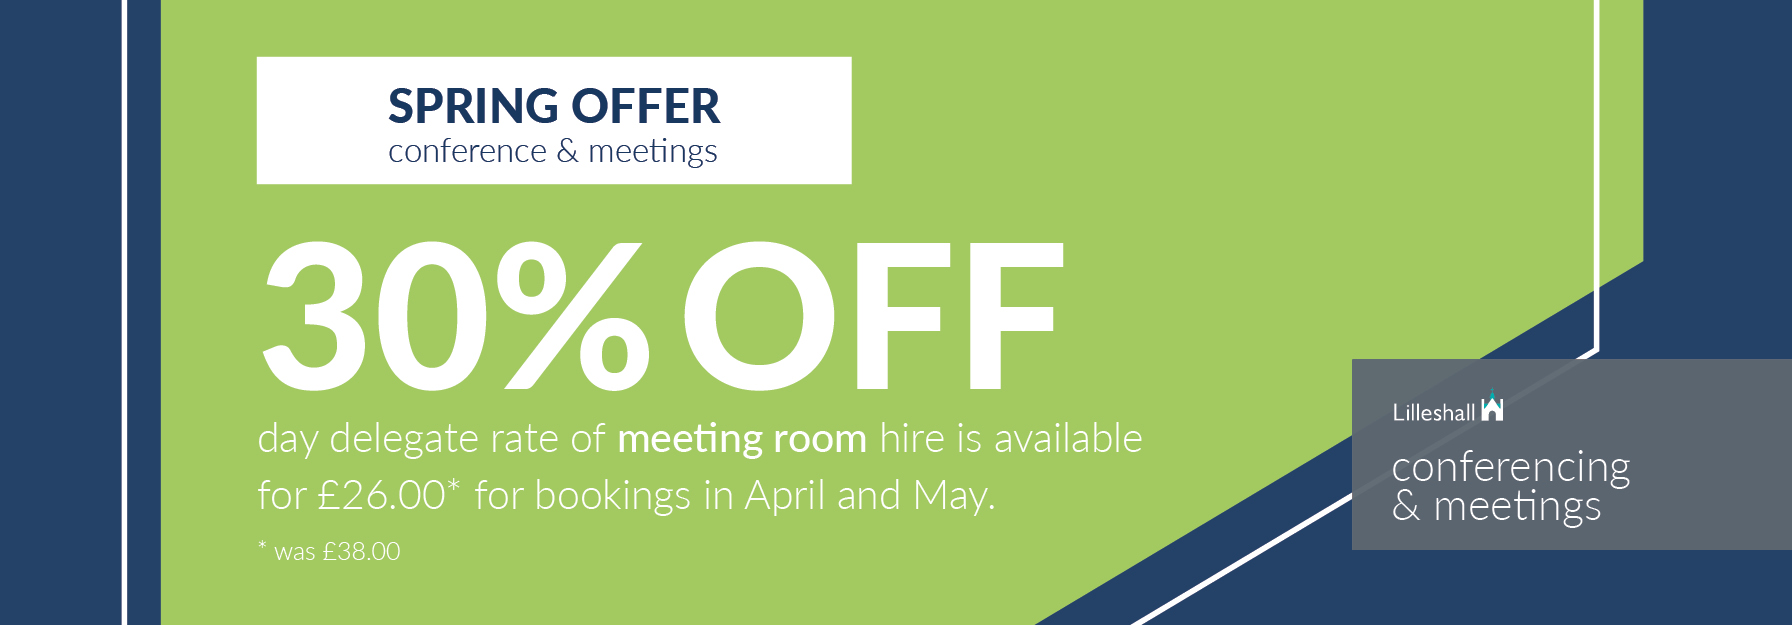 Lilleshall_Meetings_And_Conferences_Spring2019_Offer